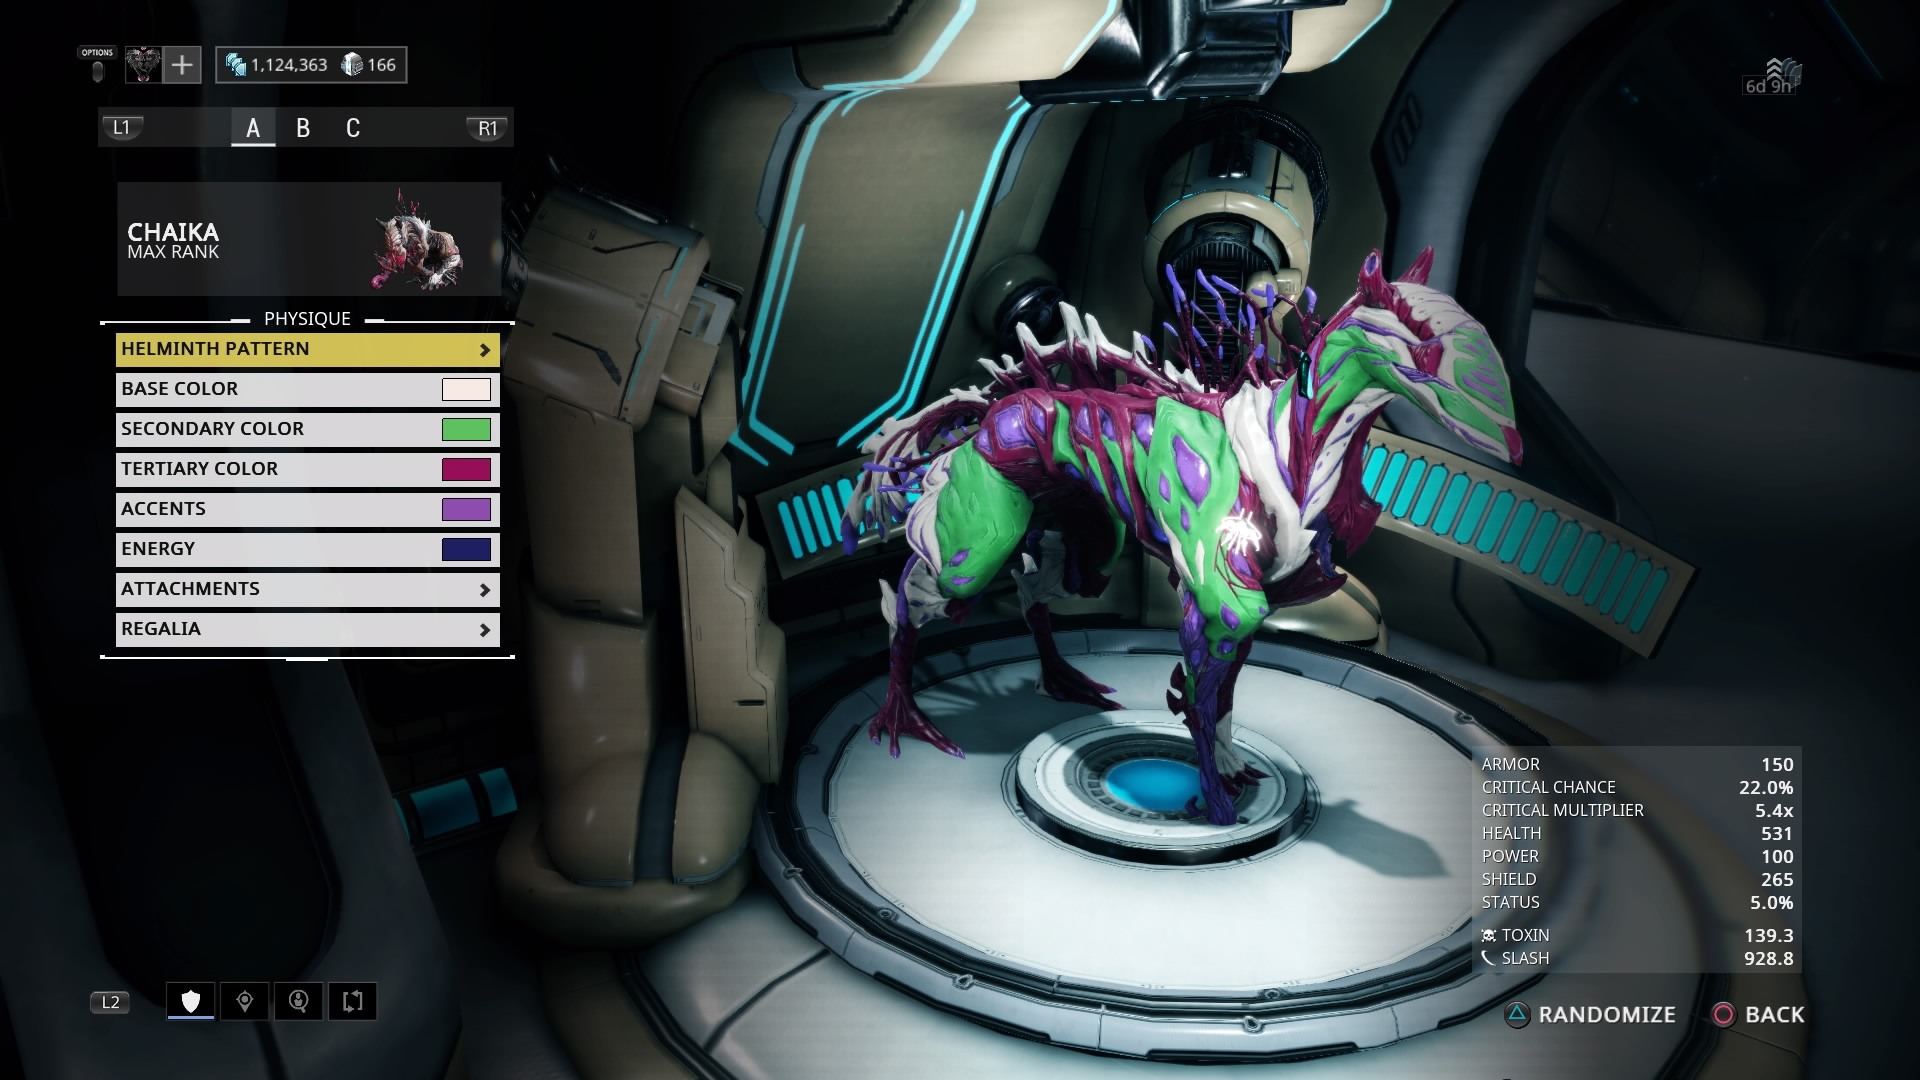 helminth charger infection)